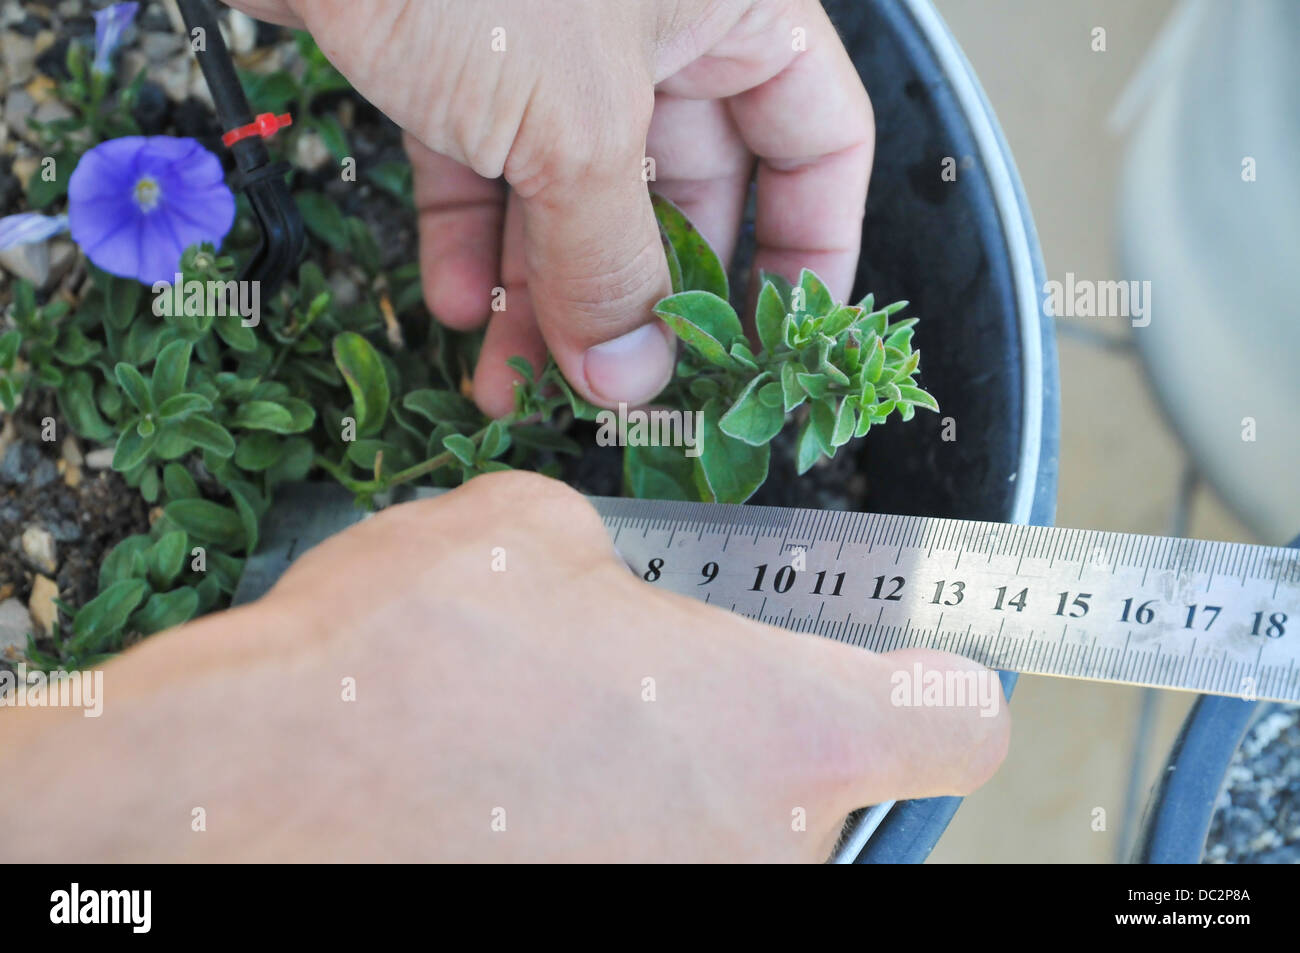 Rooftop garden experiment plants are monitored for growth using differnt soil, irrigation and fertilizers combinations - Stock Image